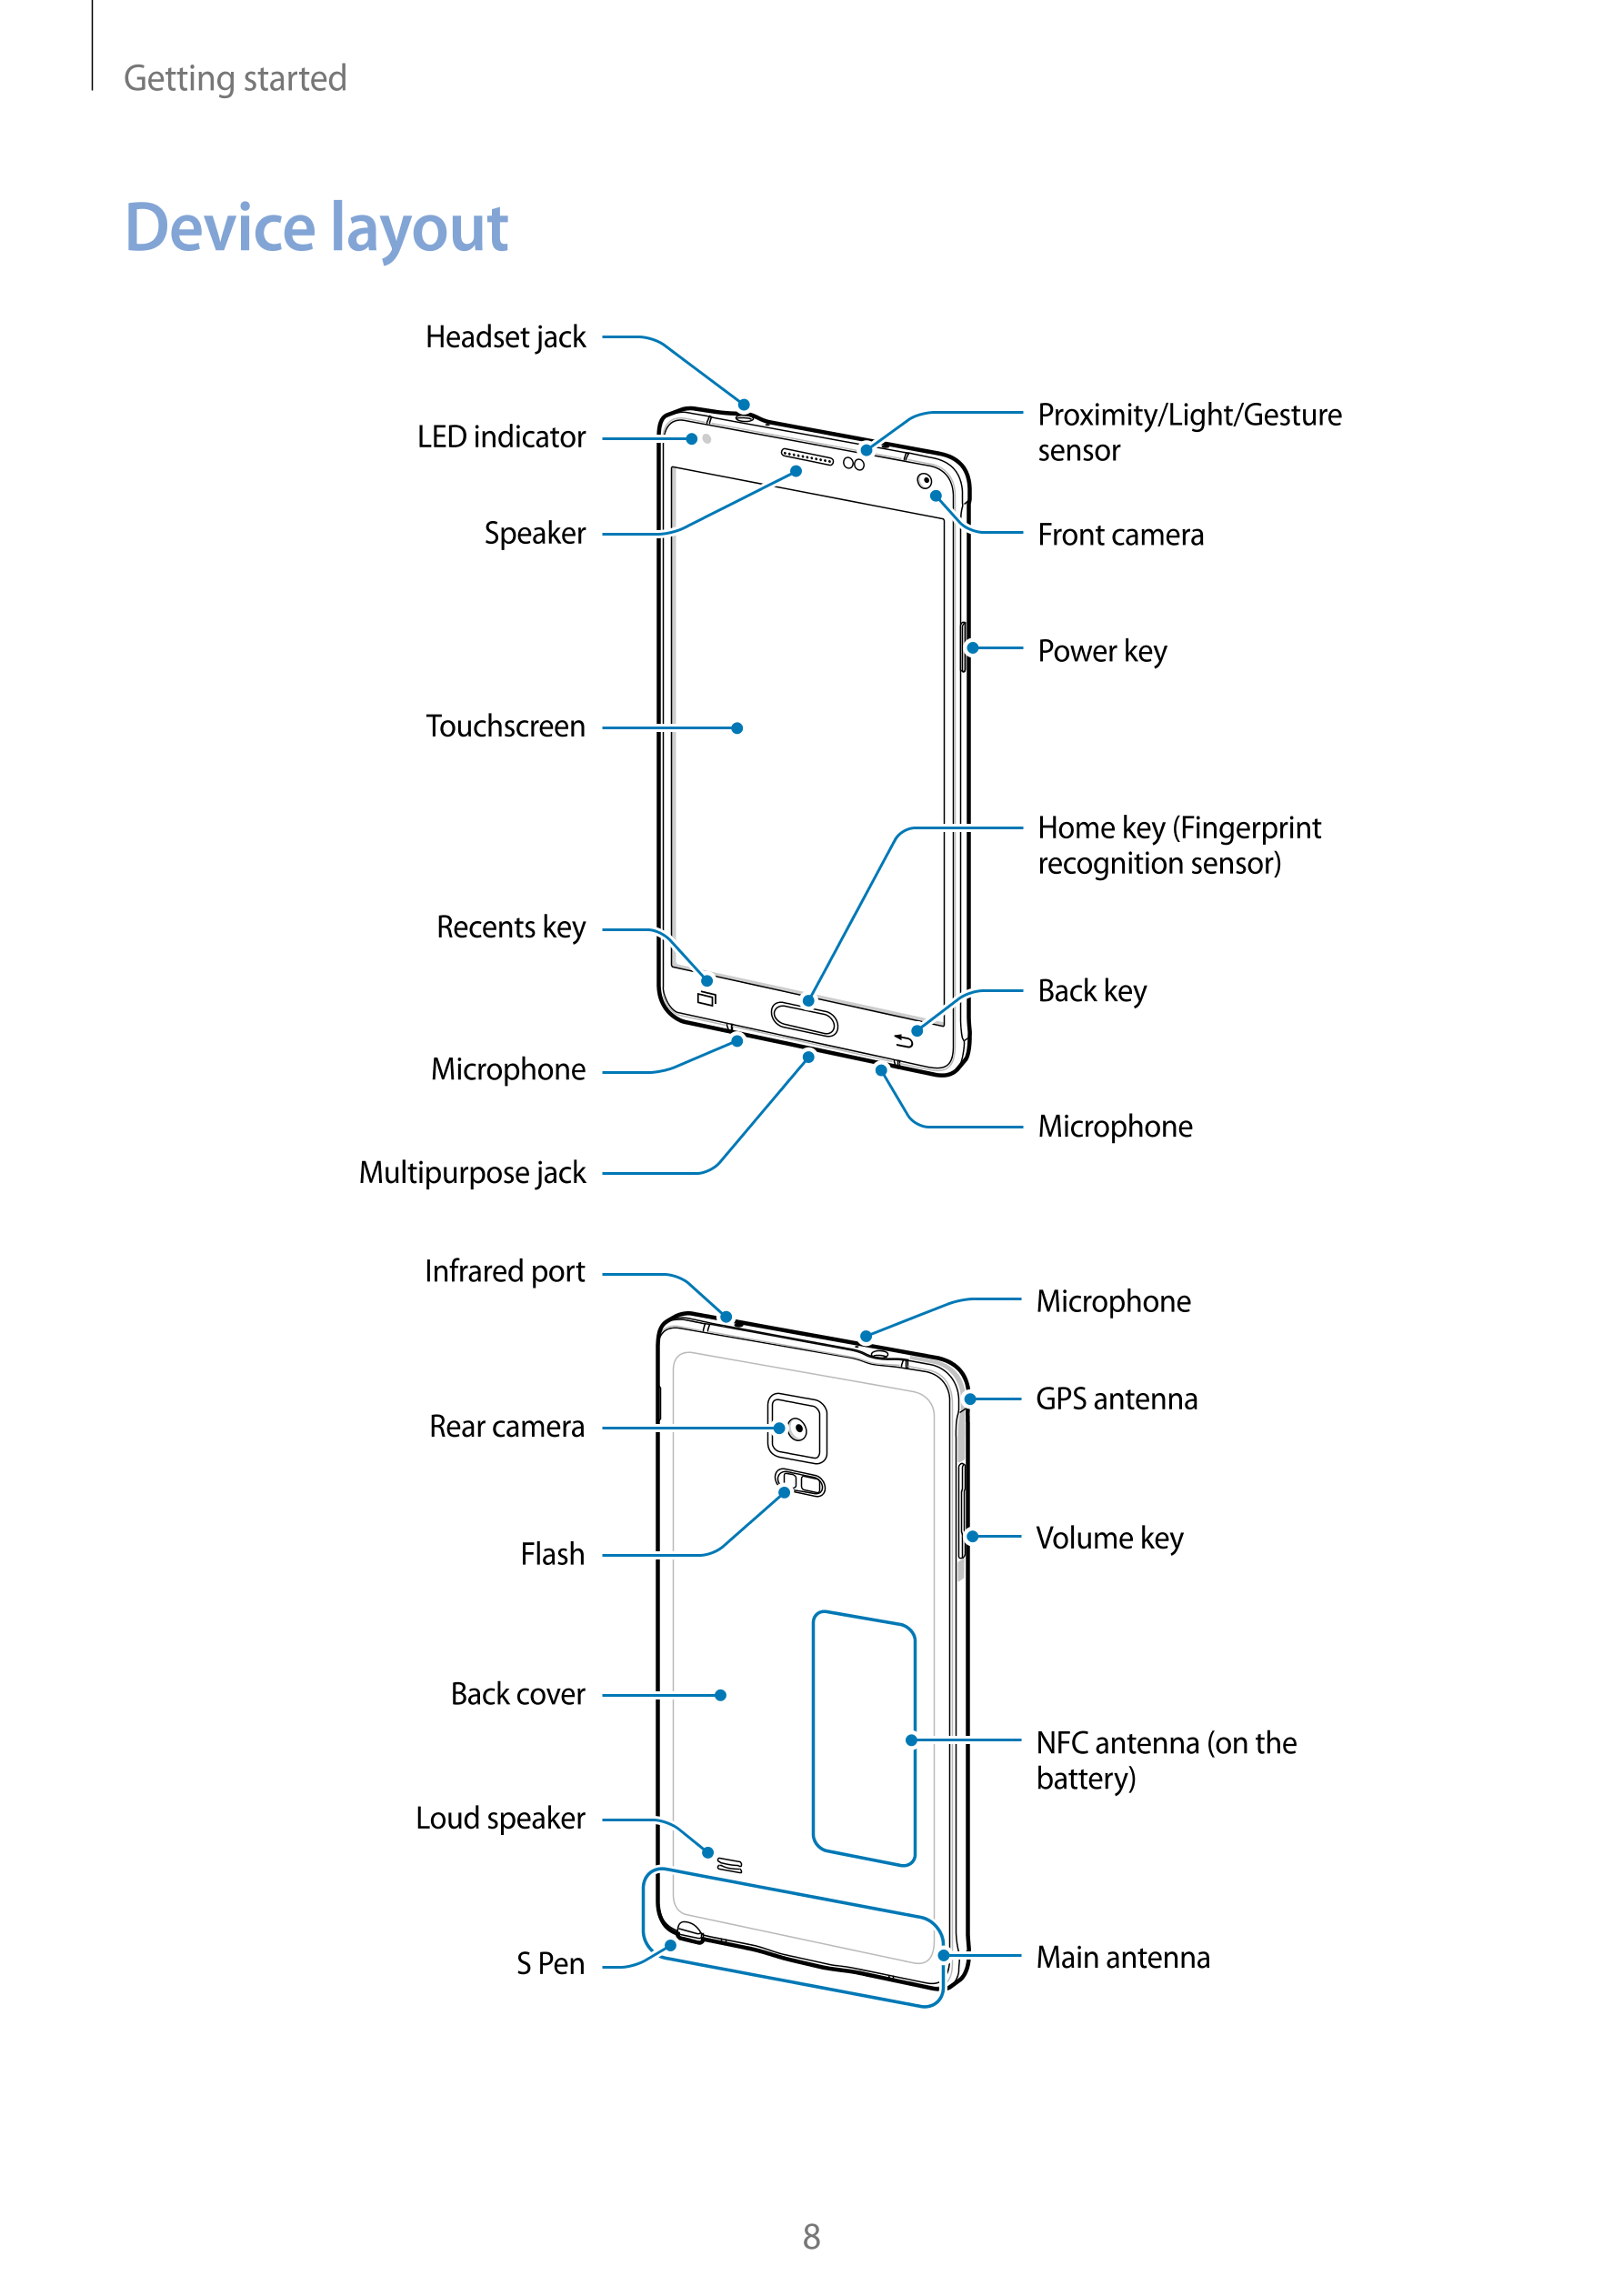 Manual - Samsung Galaxy Note 4 - Android 4.4 - Smart Guides